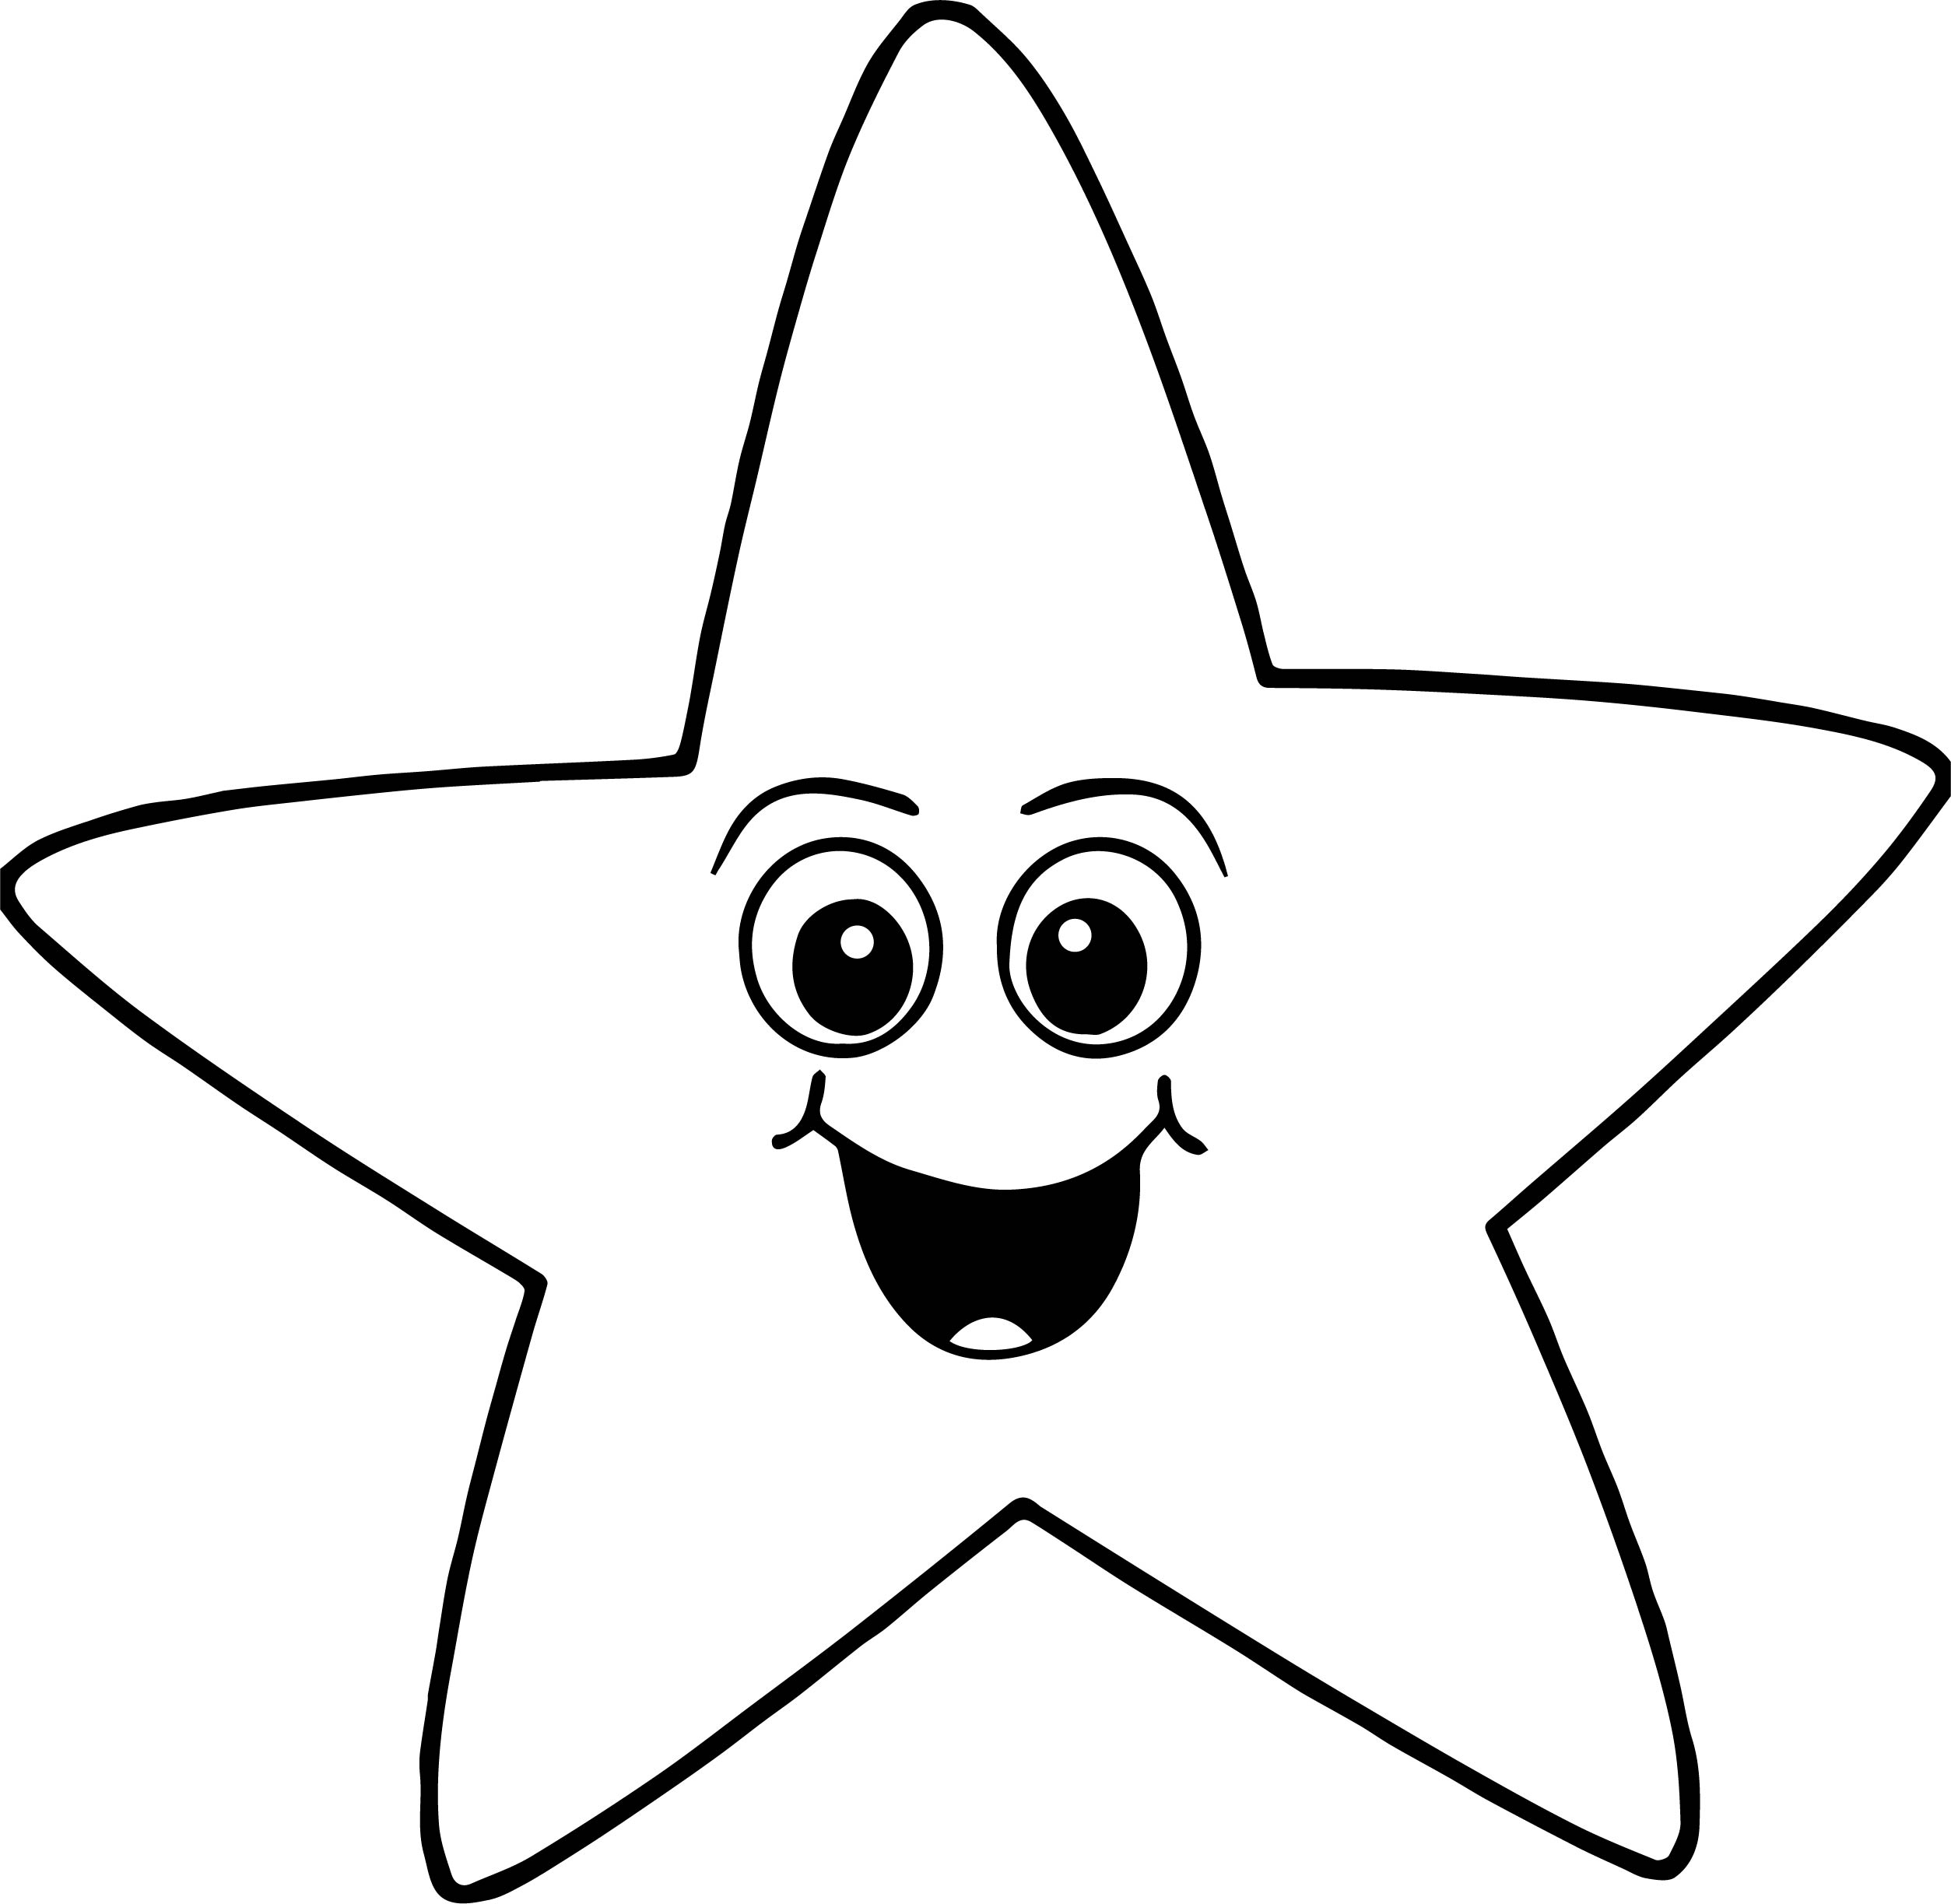 Happy Star We Coloring Page 35